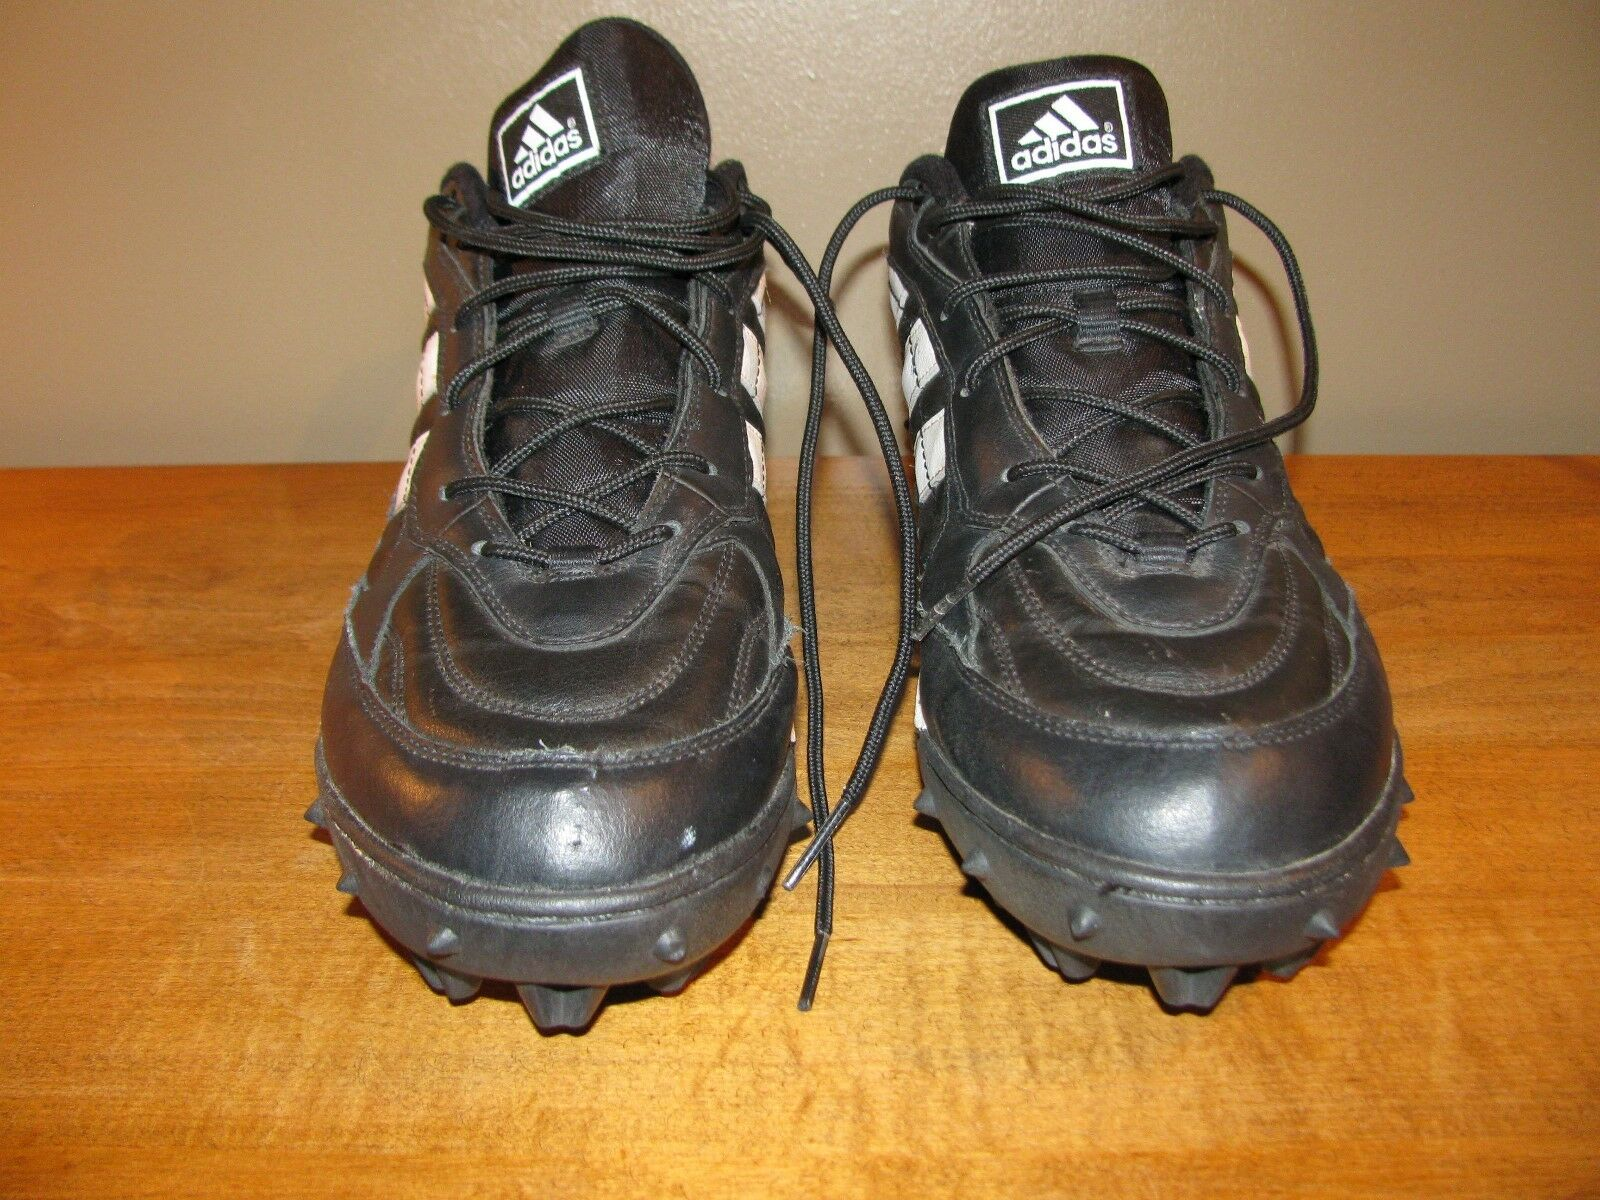 Adidas Baseball Shoes Men's Shoes Sz 16 Black/White Style Worn Once Seasonal clearance sale